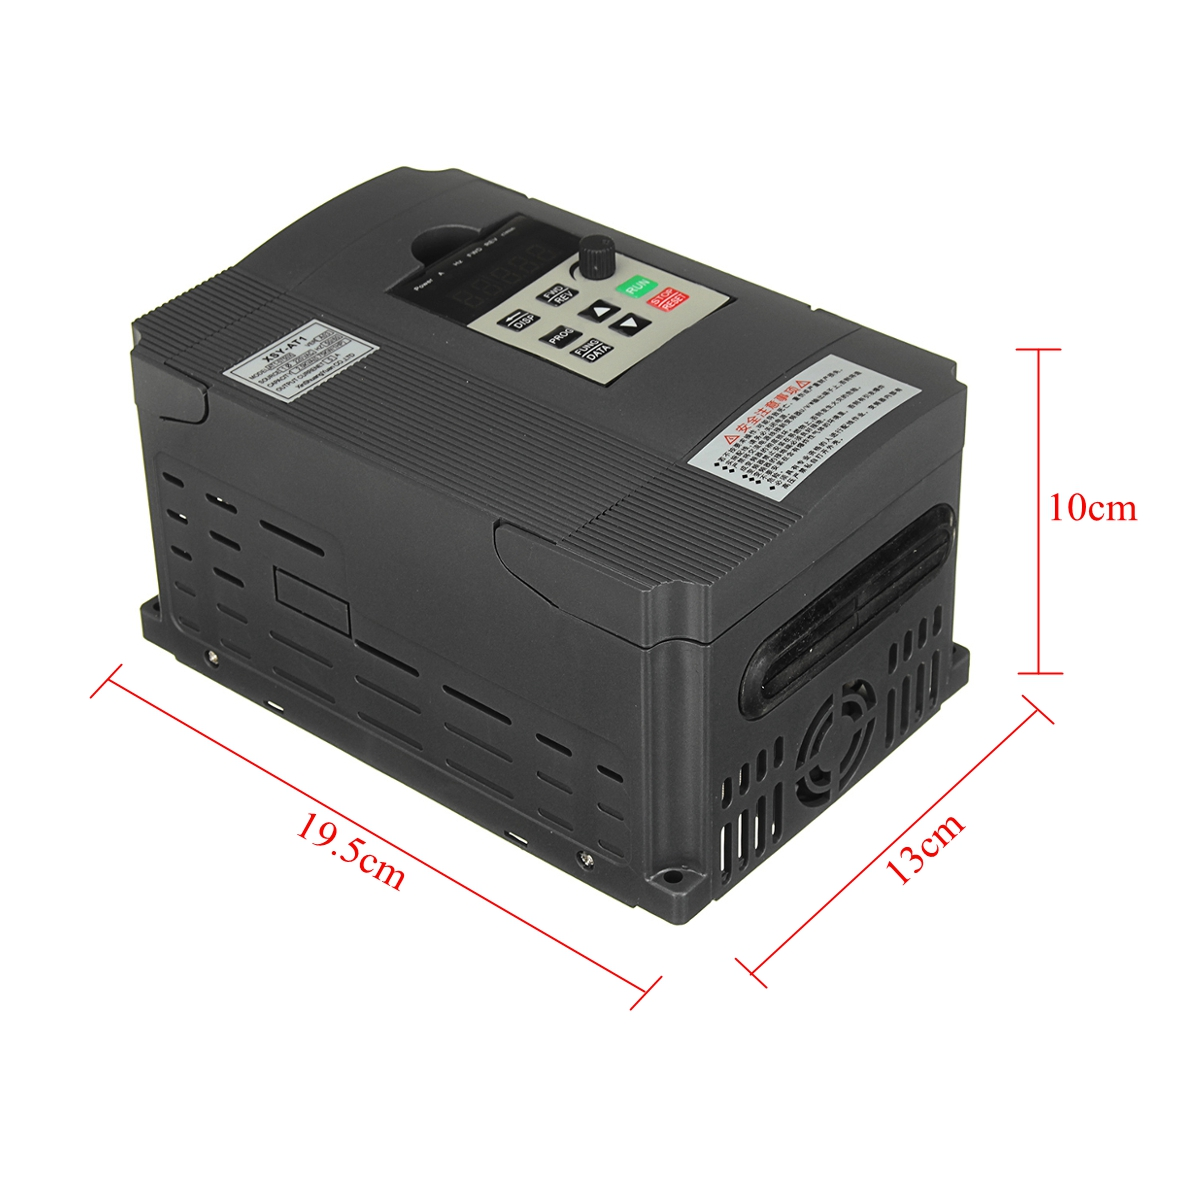 AT1-0750X 0.75KW AC 220V Single Phase Low Voltage Variable Frequency Converter Motor Speed Inverter